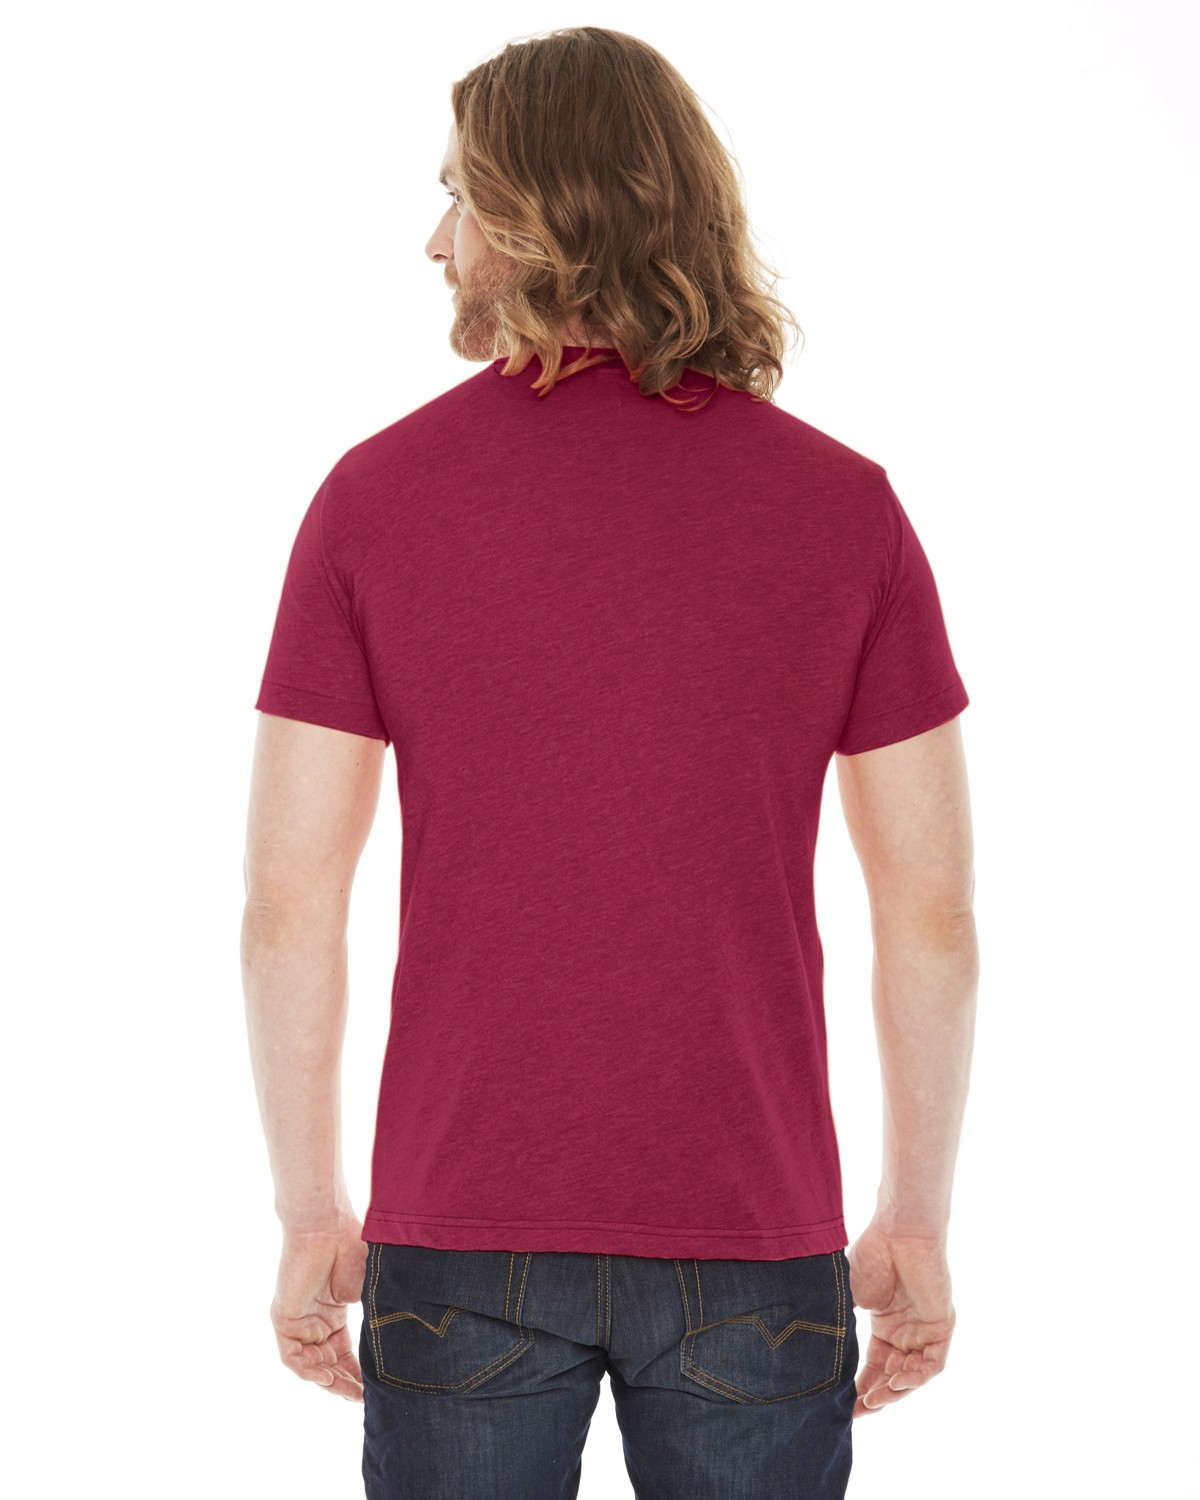 BB401 American Apparel HEATHER RED